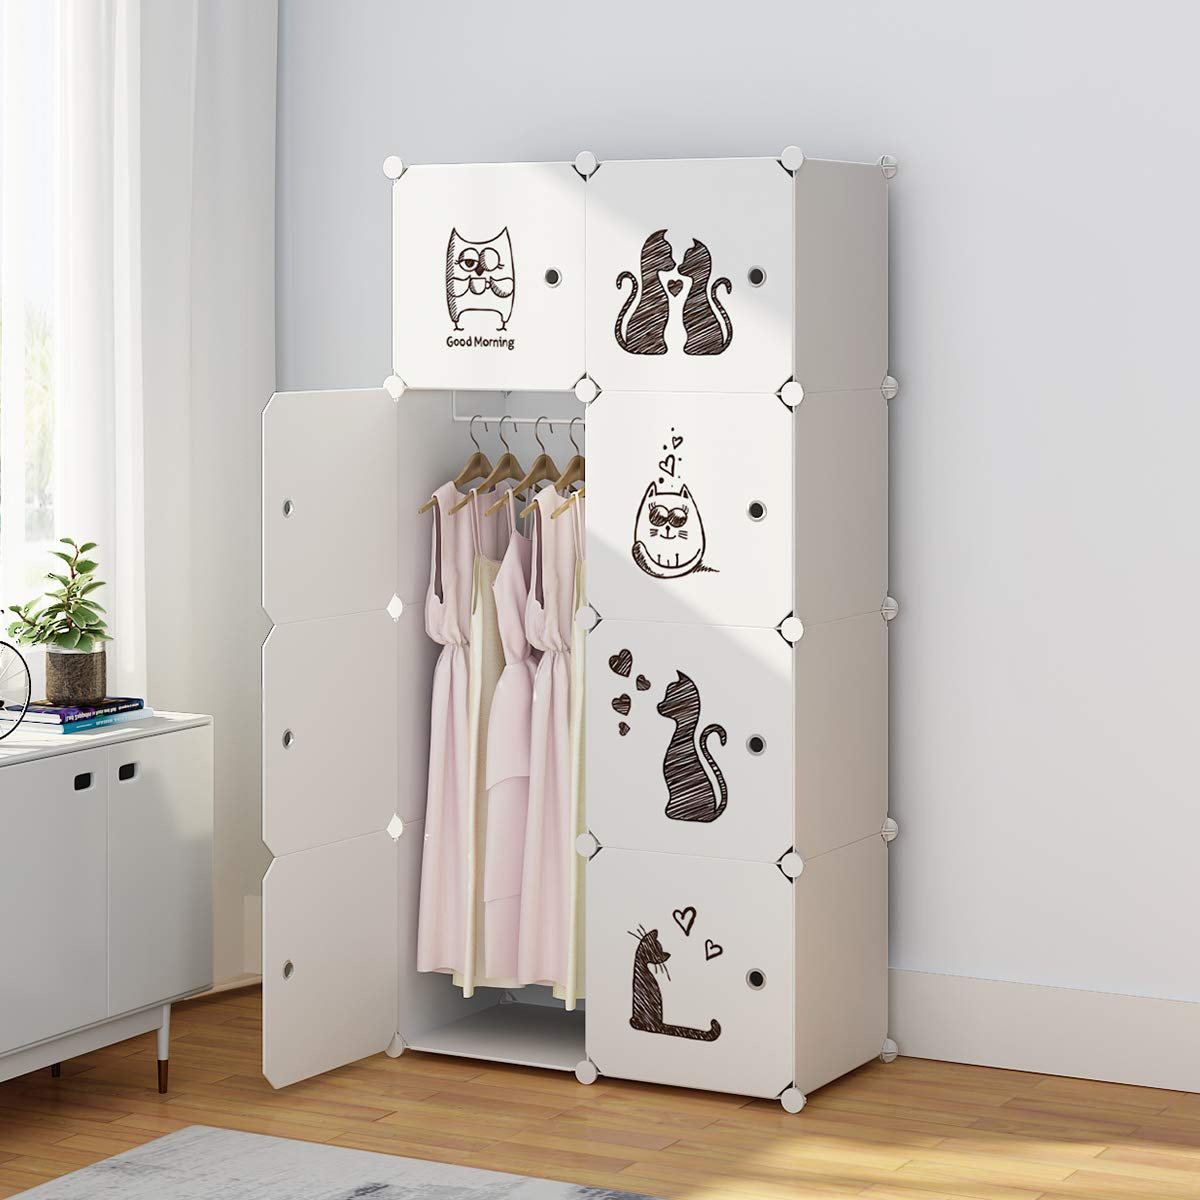 KOUSI Portable Clothes Closet Wardrobe Bedroom Armoire Dresser Cube Storage Organizer, Capacious Customizable-White Cat (5 Cubes 1 Hanging Clothes-FBA)